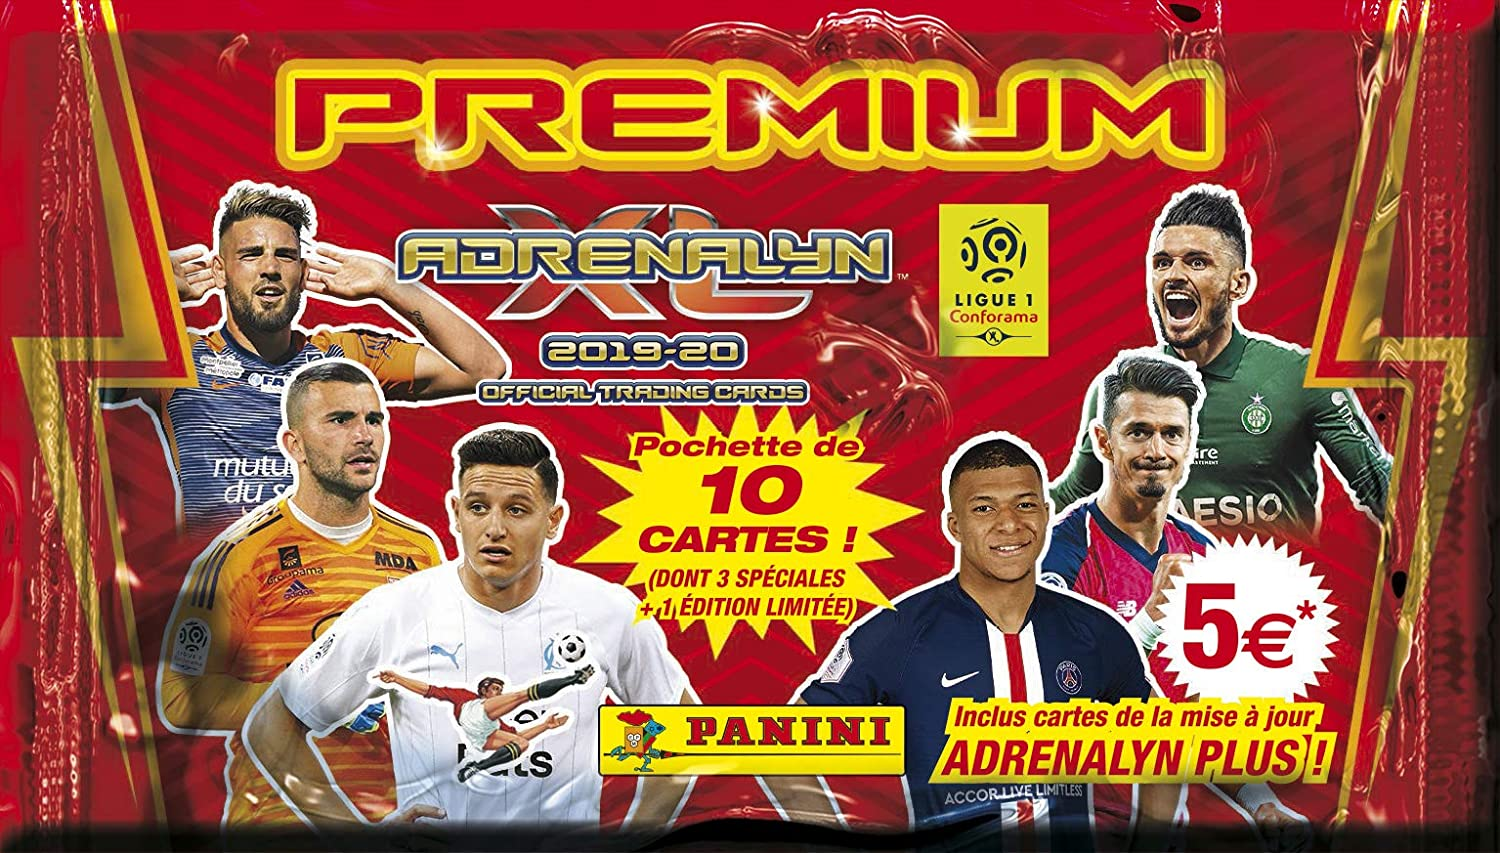 Panini- 1 Funda Premium ADRENALYN XL Liga 1 2019-20, 2526-045 ...